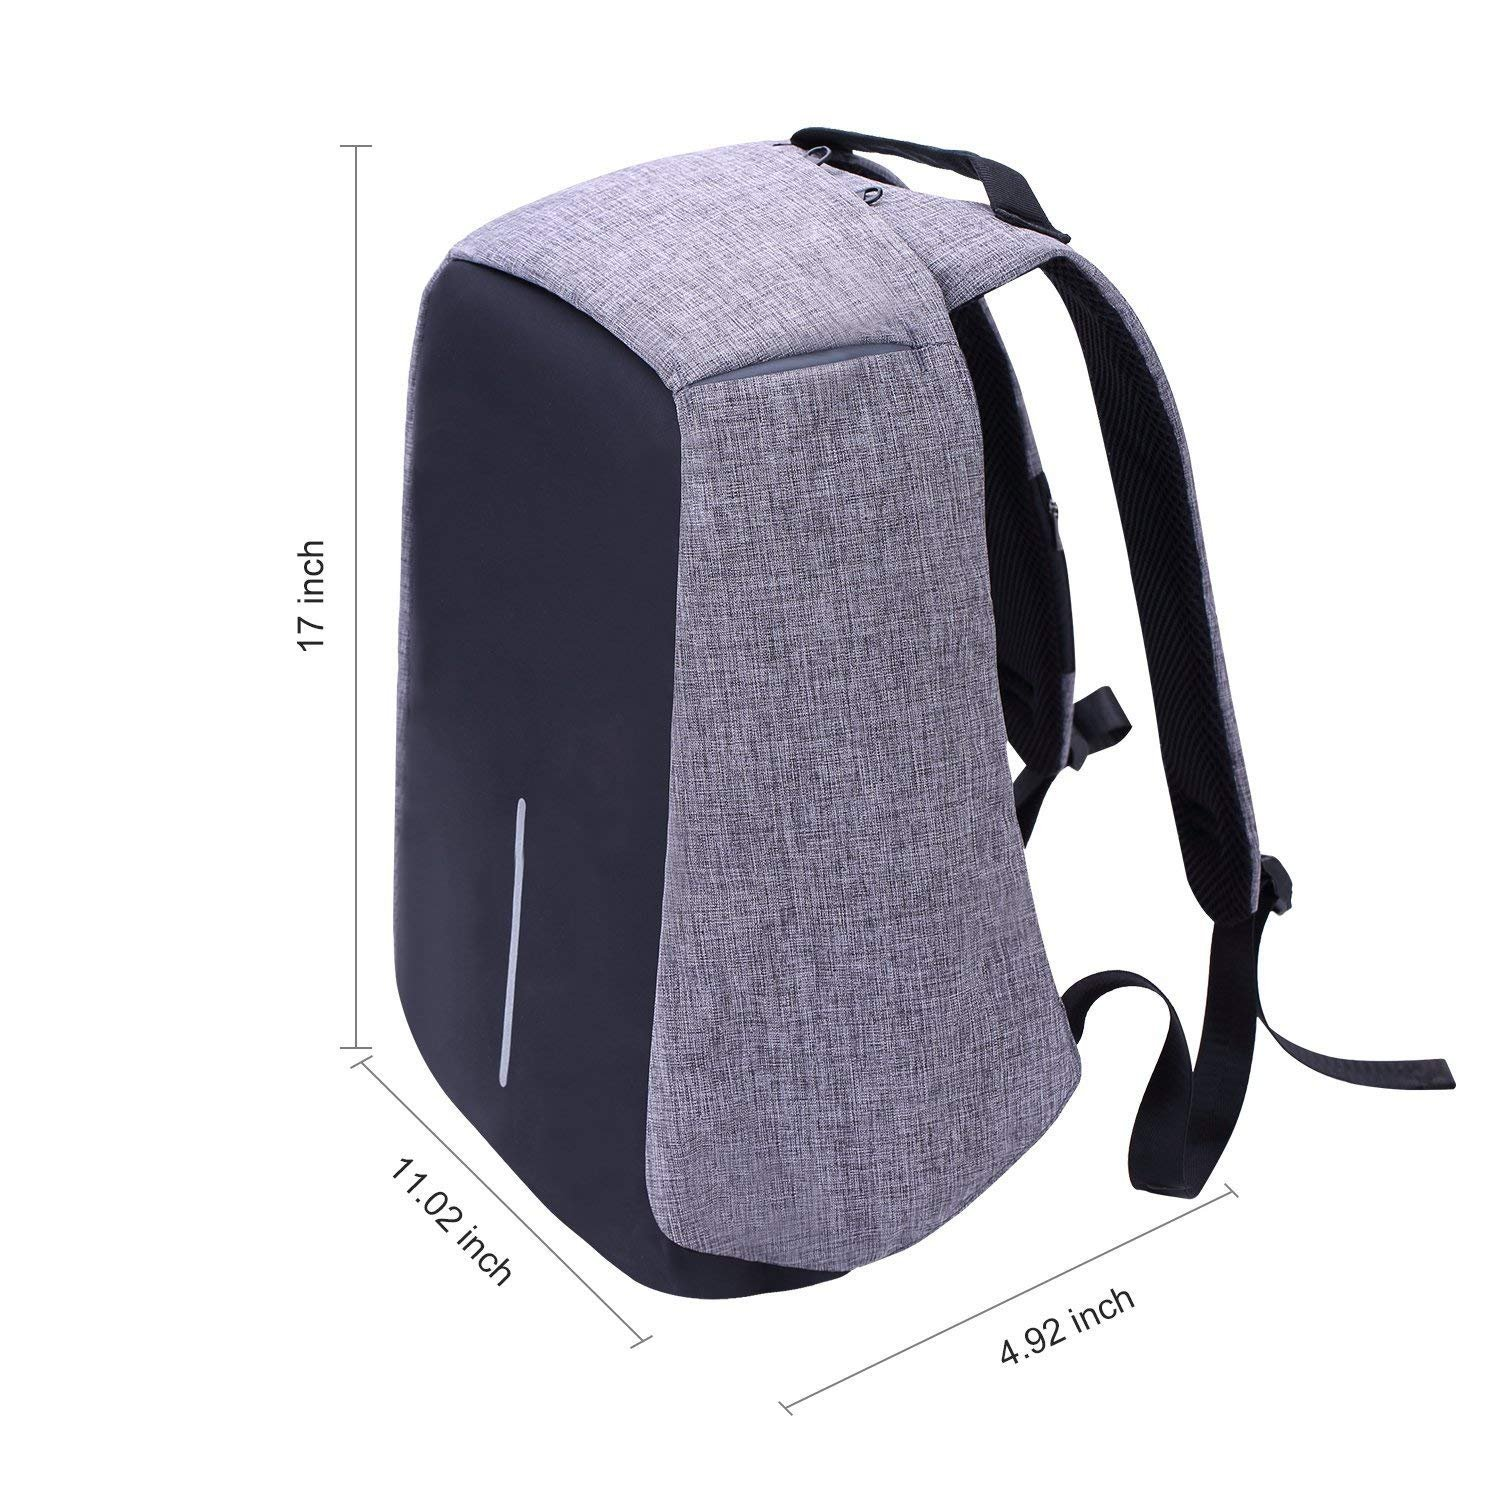 Laptop Backpack business anti-theft waterproof travel computer backpack with USB charging port college school computer bag for women & men fits 15.6 Inch Laptop and Notebook - Grey by Langus (Image #6)